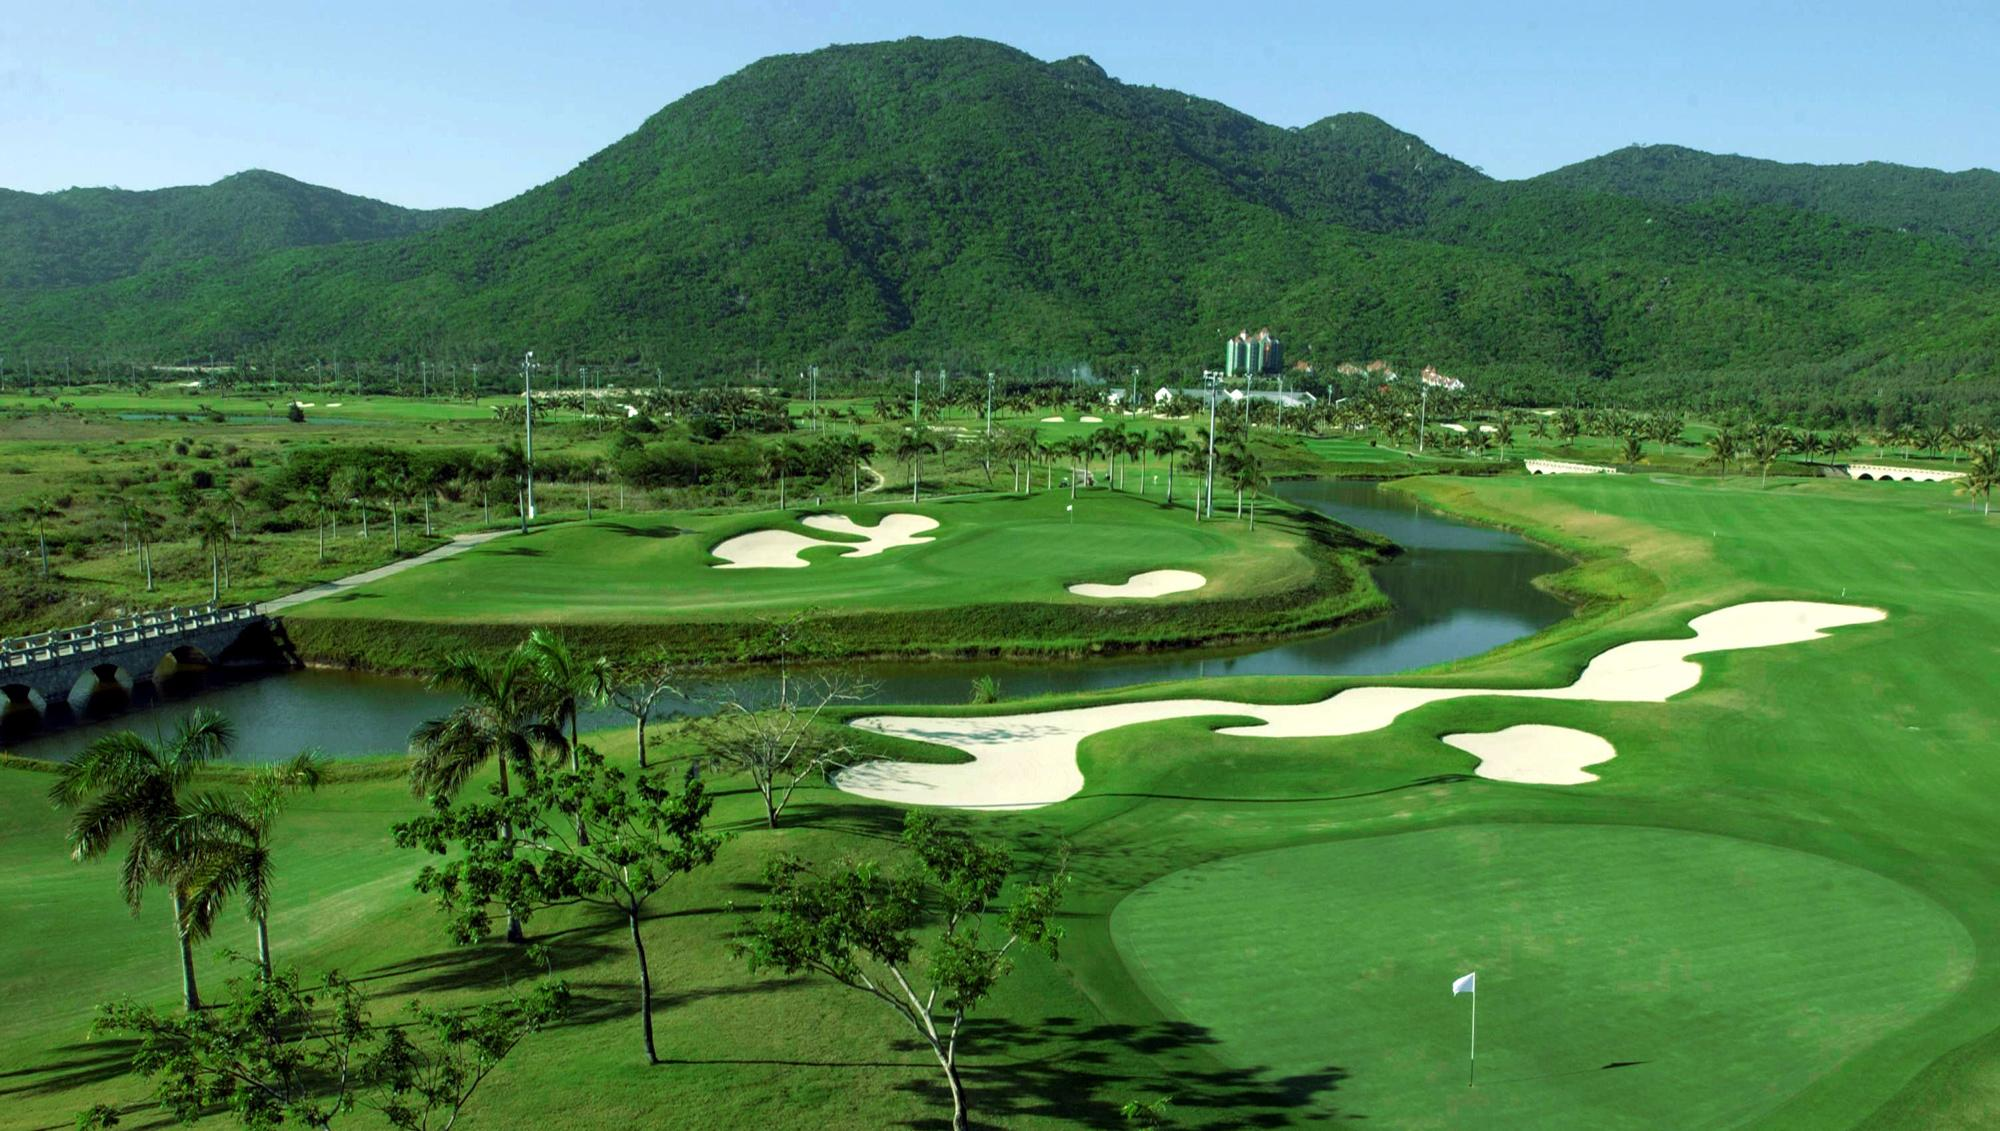 The Sanya Luhuitou Golf Course's lovely golf course in gorgeous China.